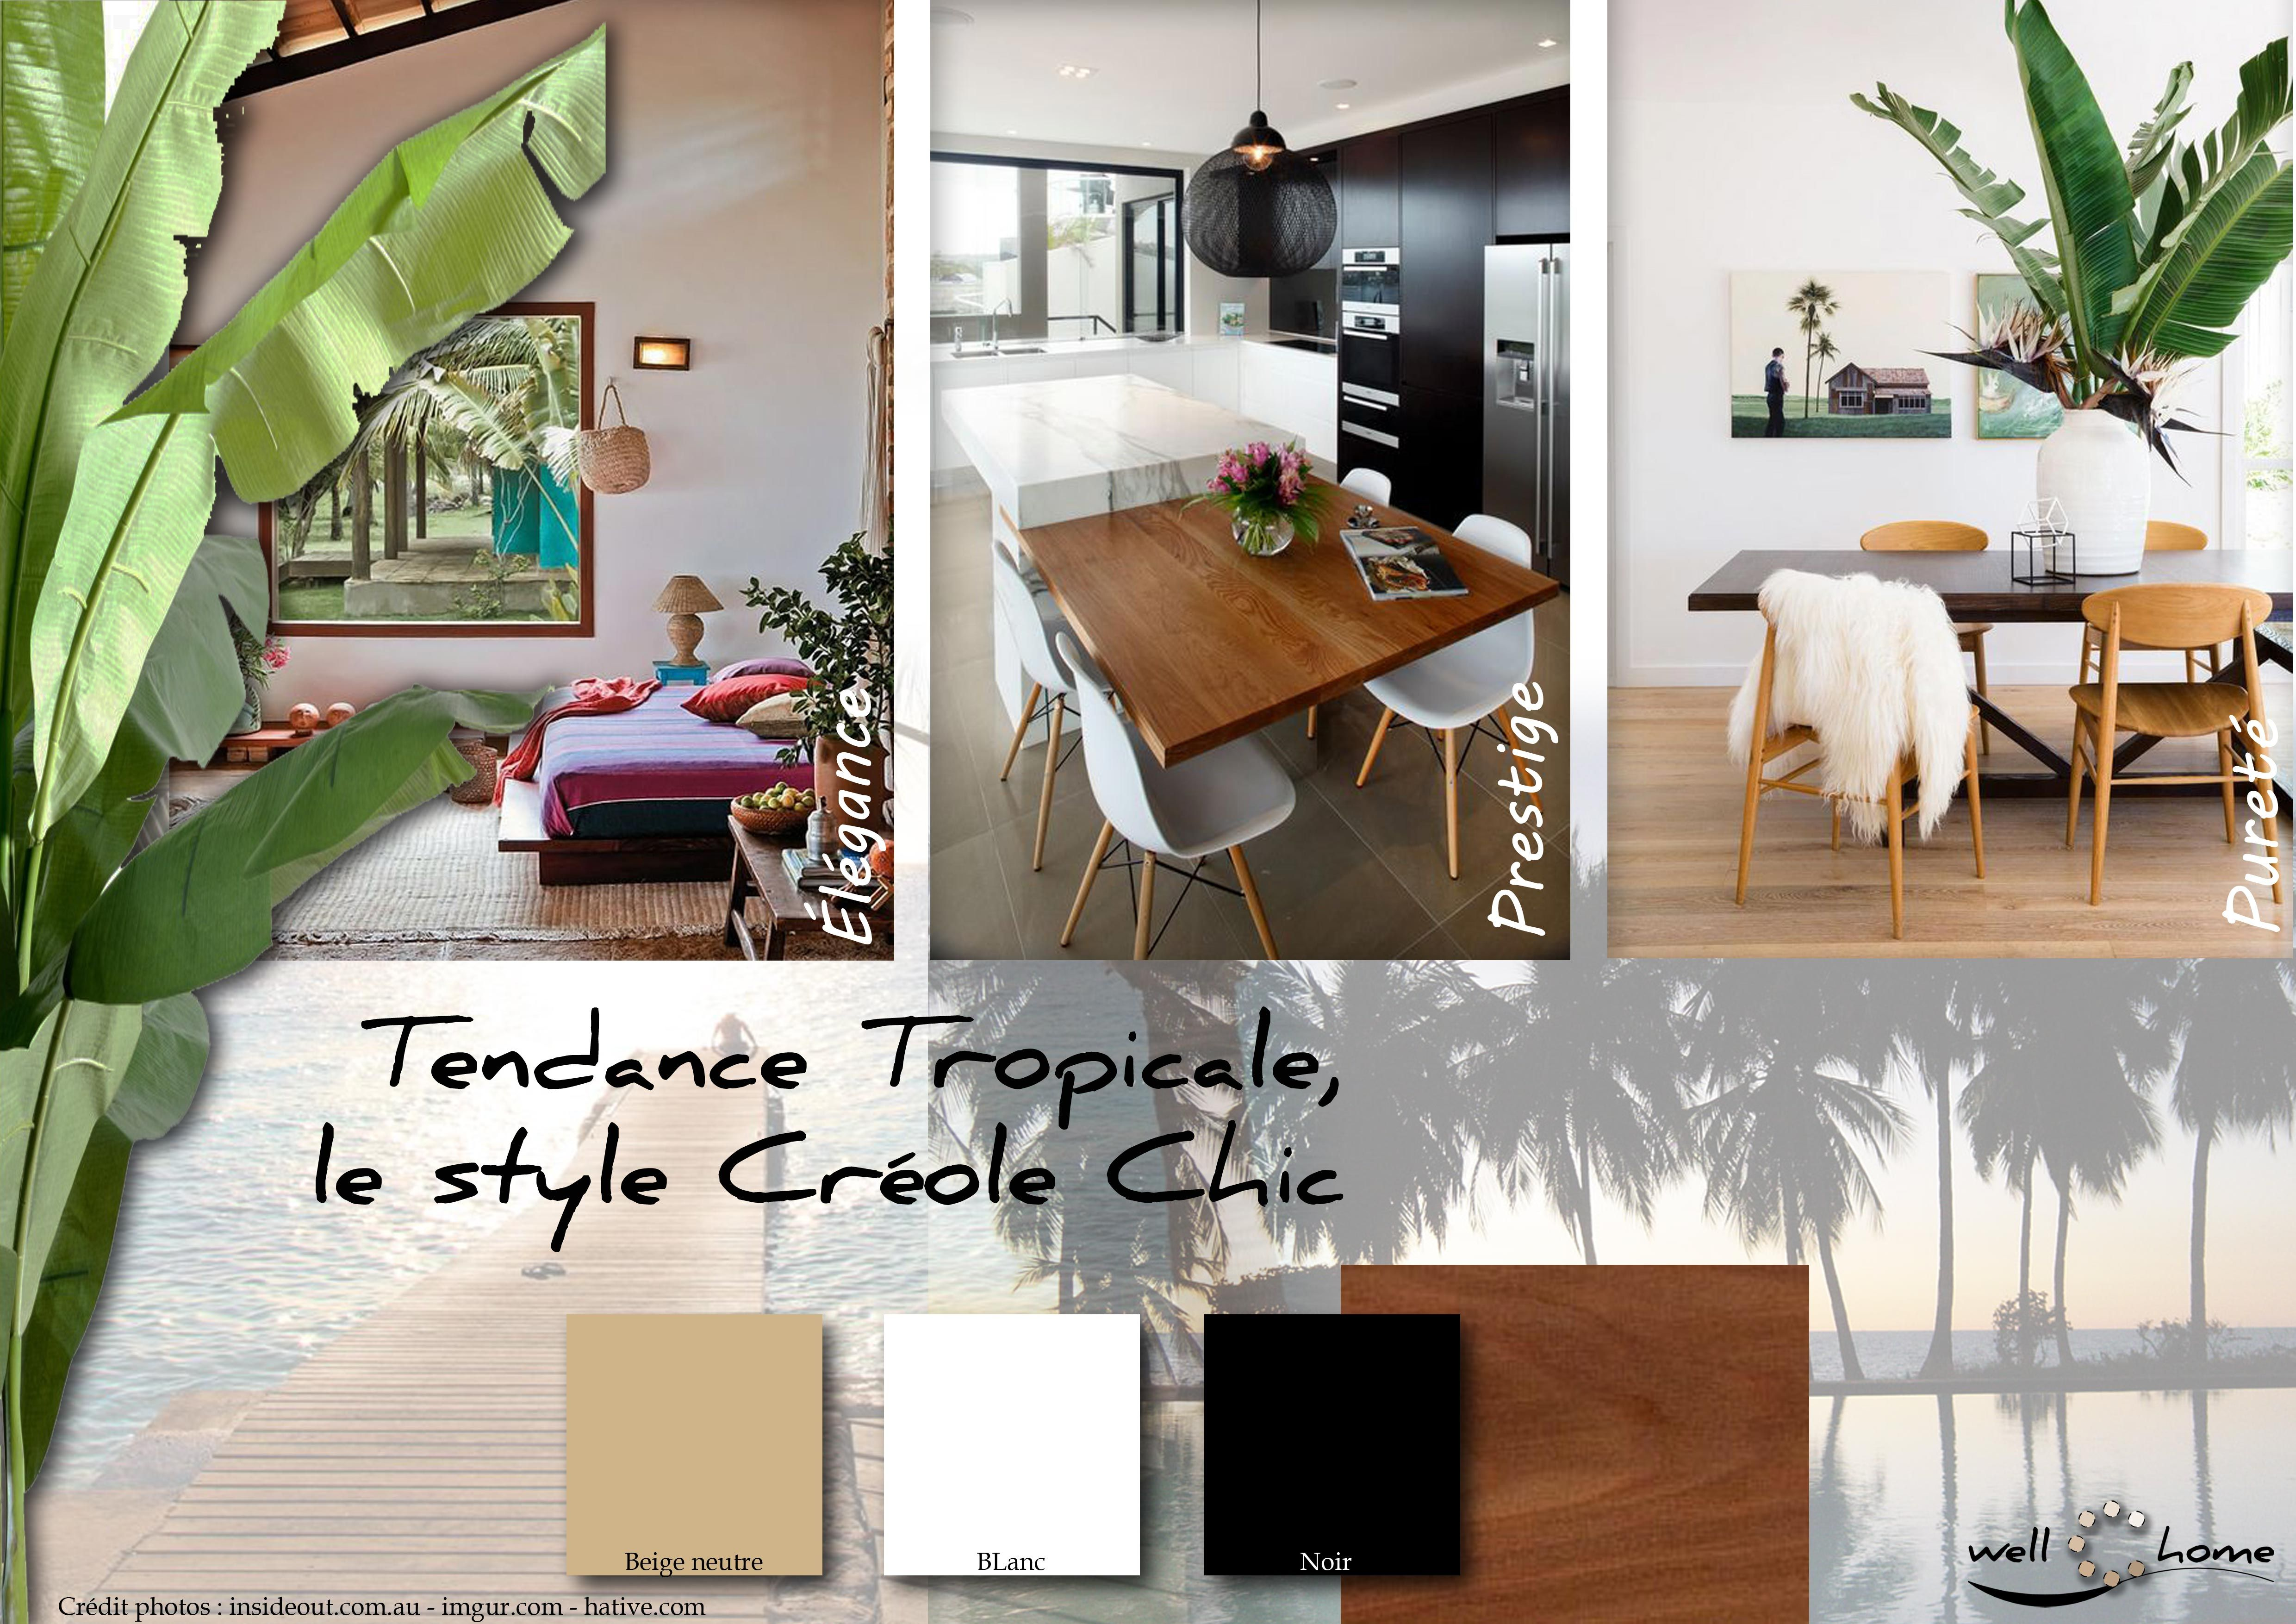 moodboard d co planche d 39 ambiance tendance tropicale style cr ole chic r alisation well c. Black Bedroom Furniture Sets. Home Design Ideas